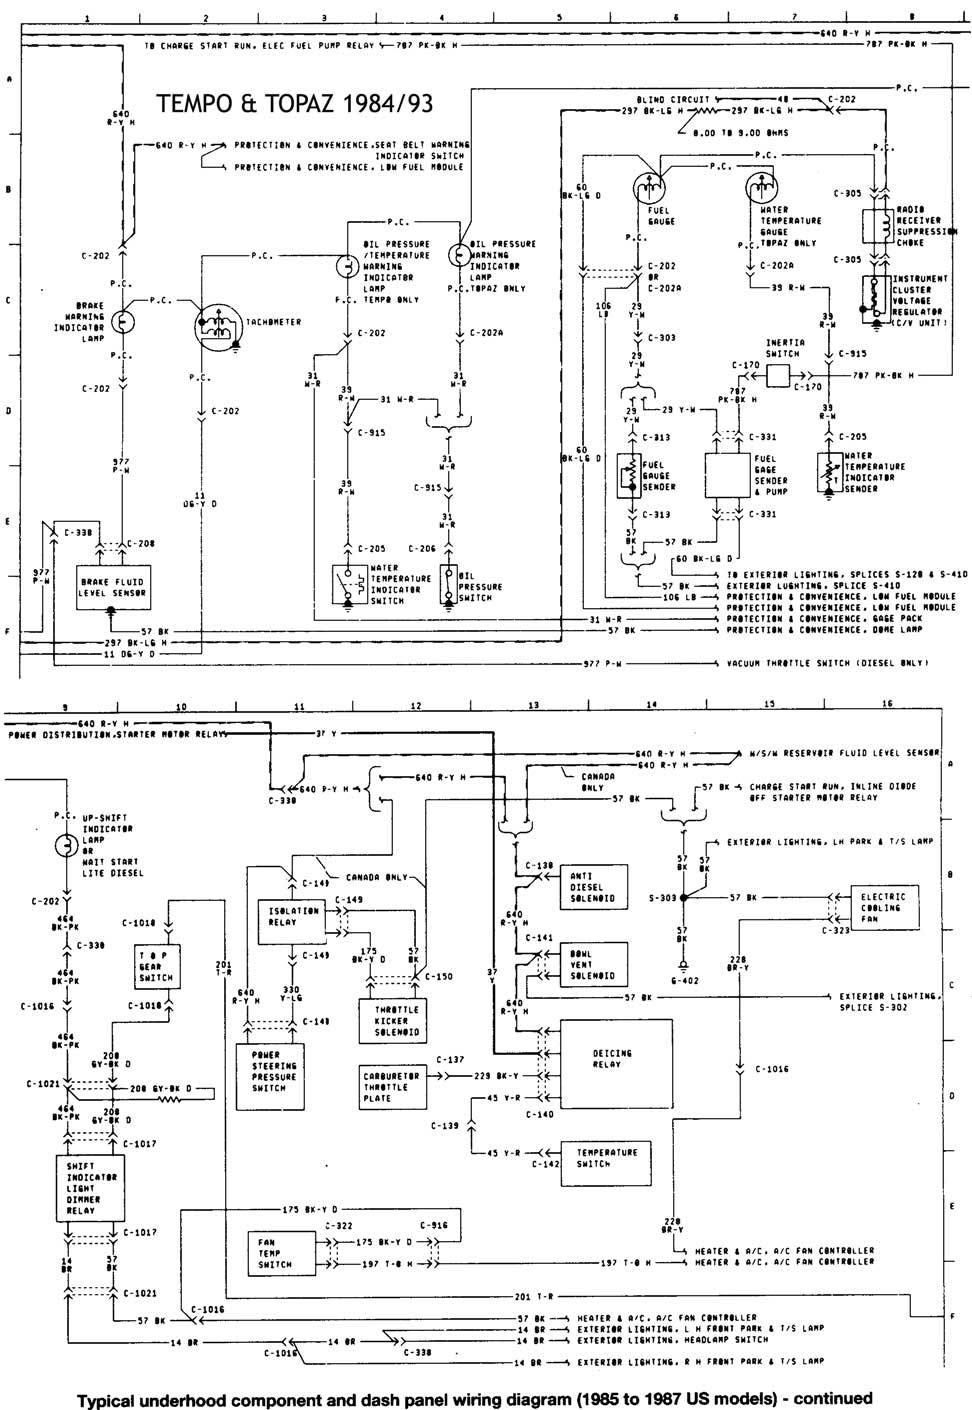 Ikon Governor Wiring Diagram | Wiring Resources 2019 on